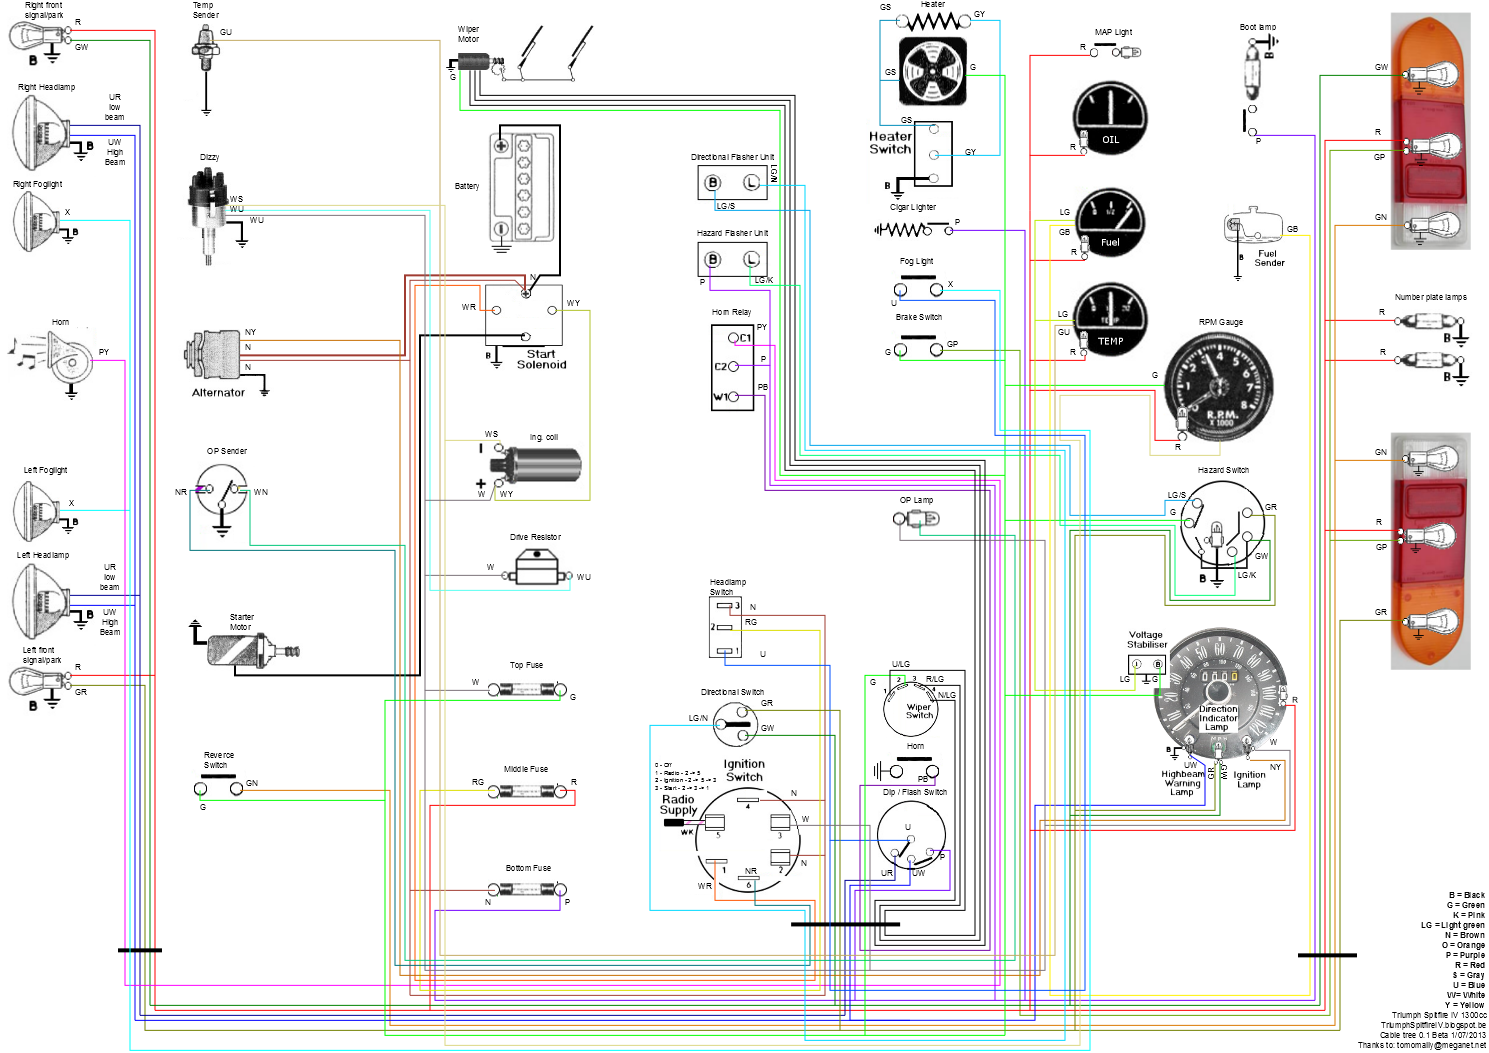 spitfire iv wiring diagram 1980 spitfire wiring diagram triumph tr3 wiring diagram \u2022 wiring  at crackthecode.co